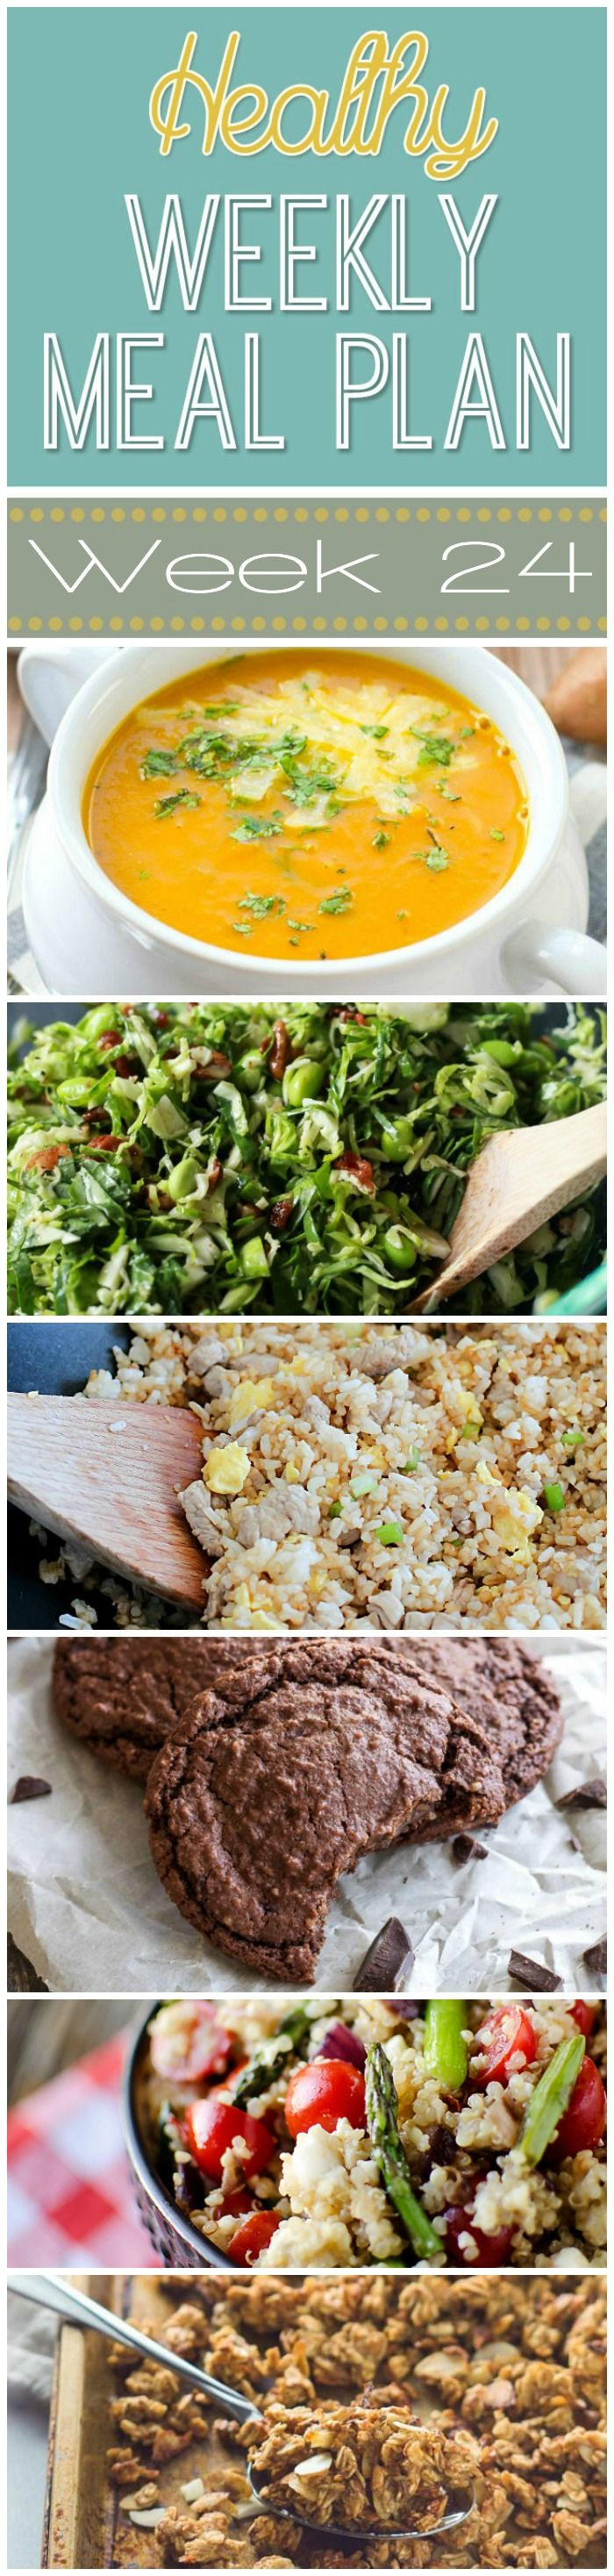 Healthy Weekly Meal Plan Week 24 is filled with so many great recipes! Lots of healthy main dishes to add to your dinner rotation! Plus a breakfast lunch snack and even an amazing dessert too!